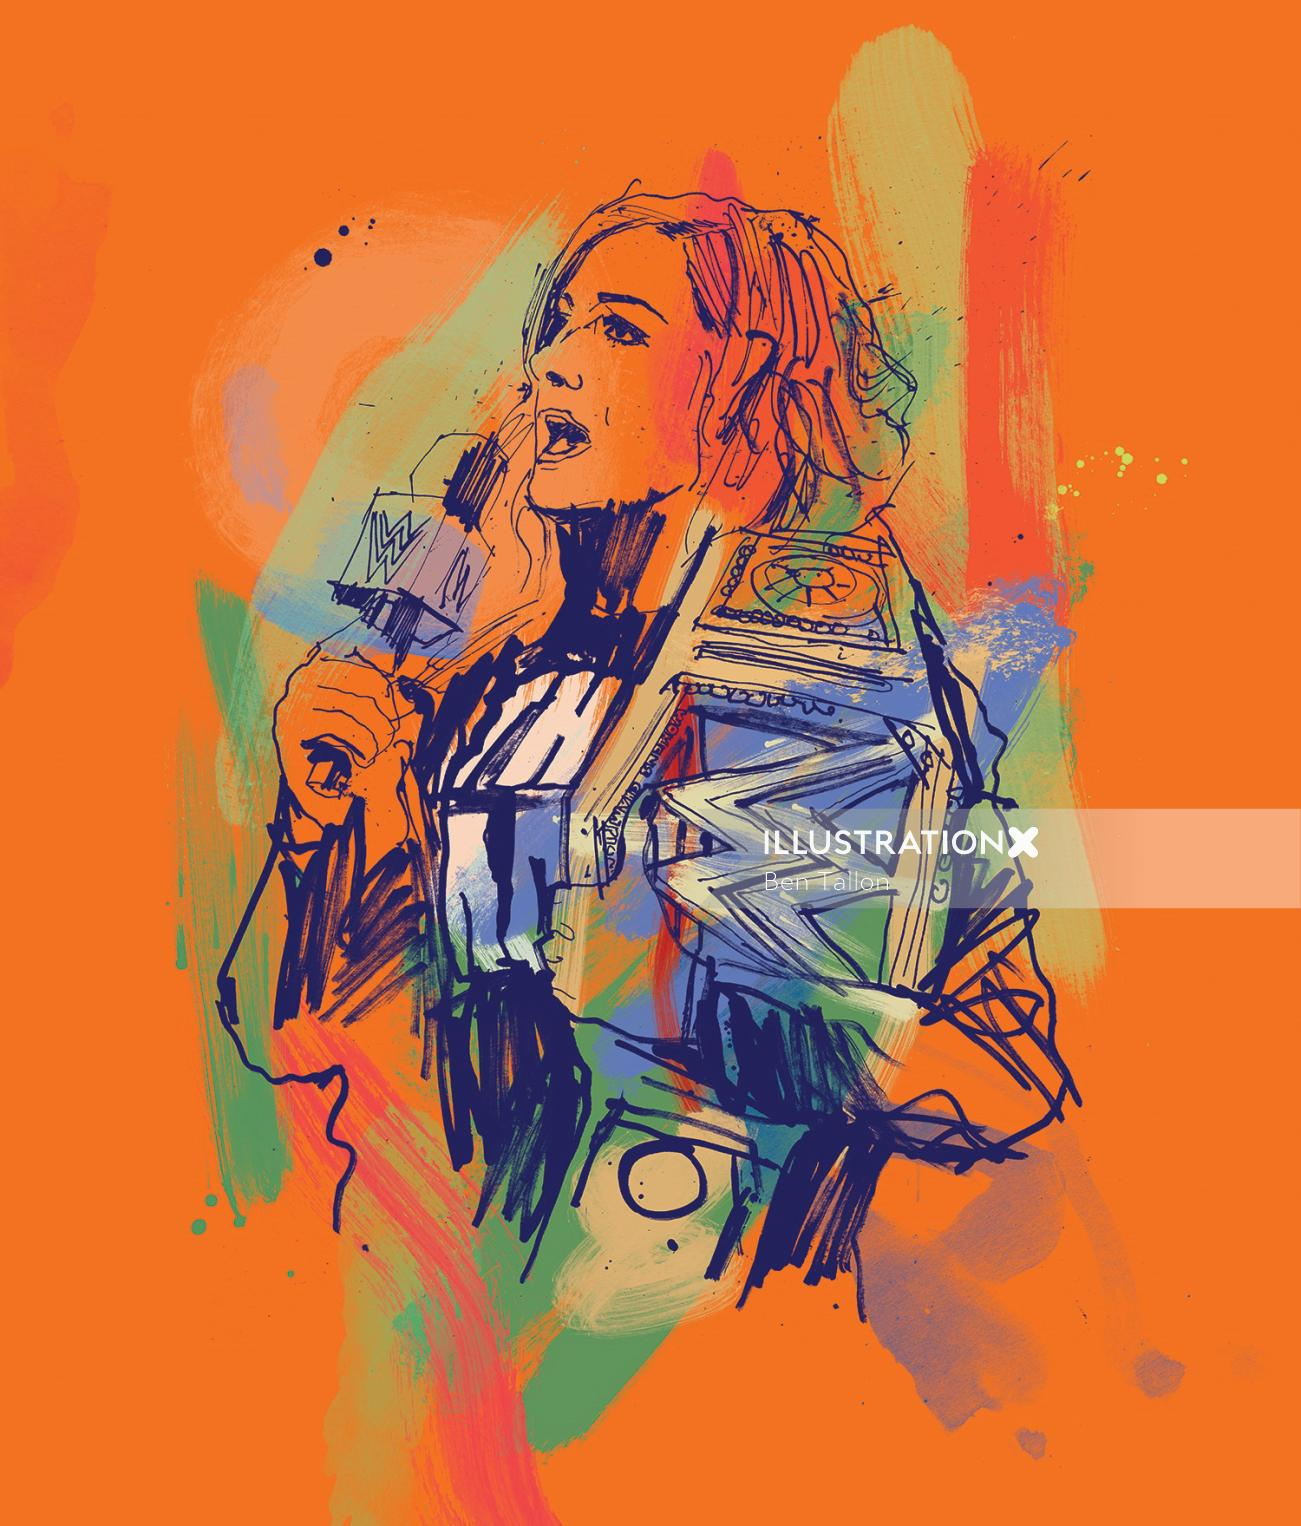 WWE star Becky Lynch pen and ink drawing